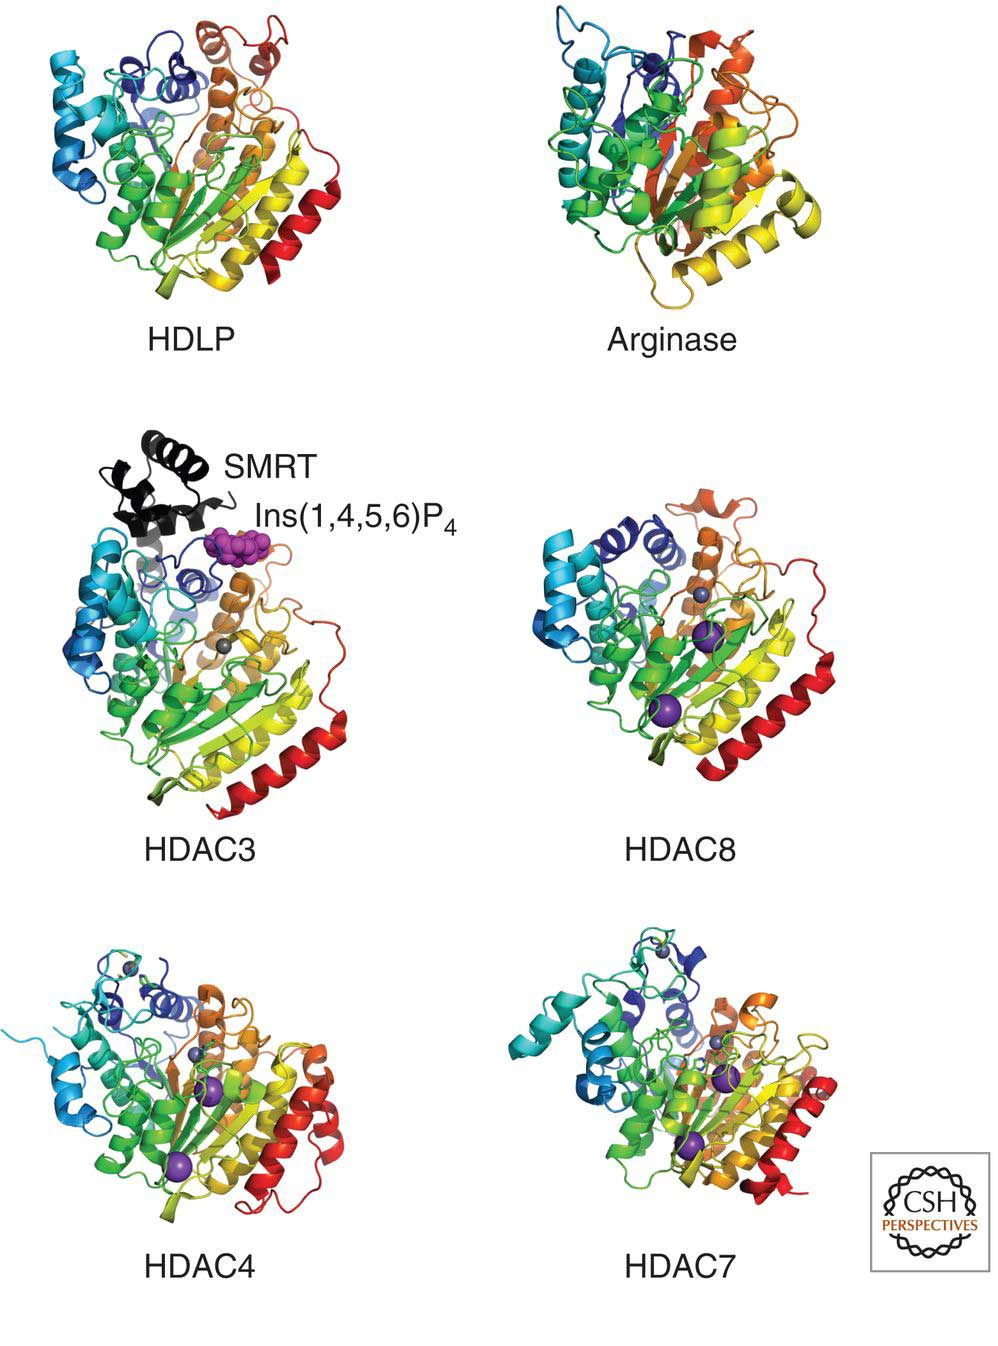 HDAC Structures